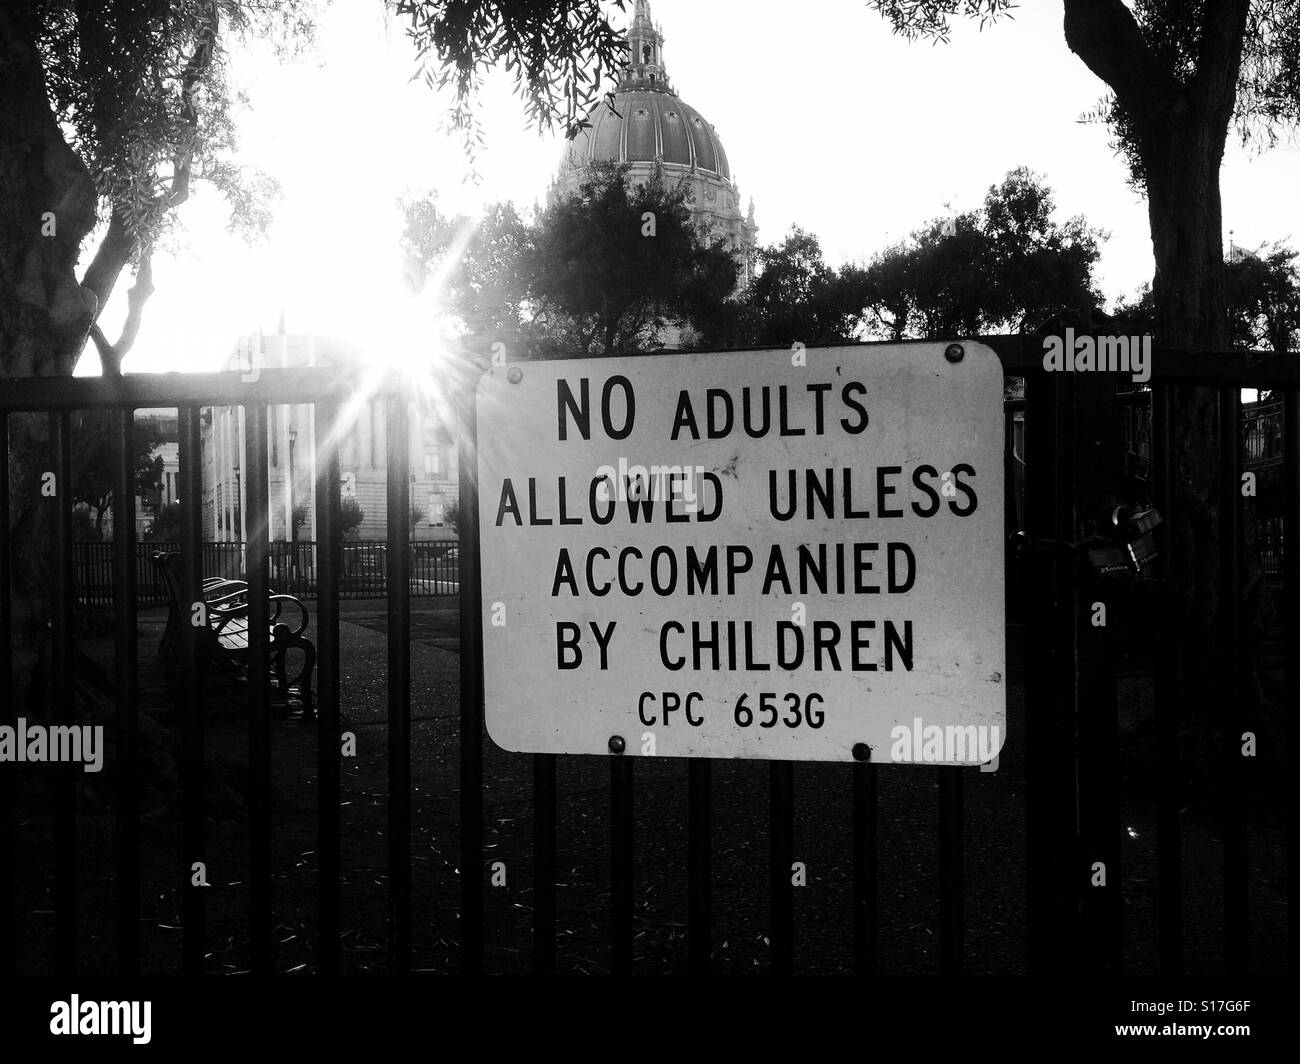 No adults allowed unless accompanied by children - Stock Image